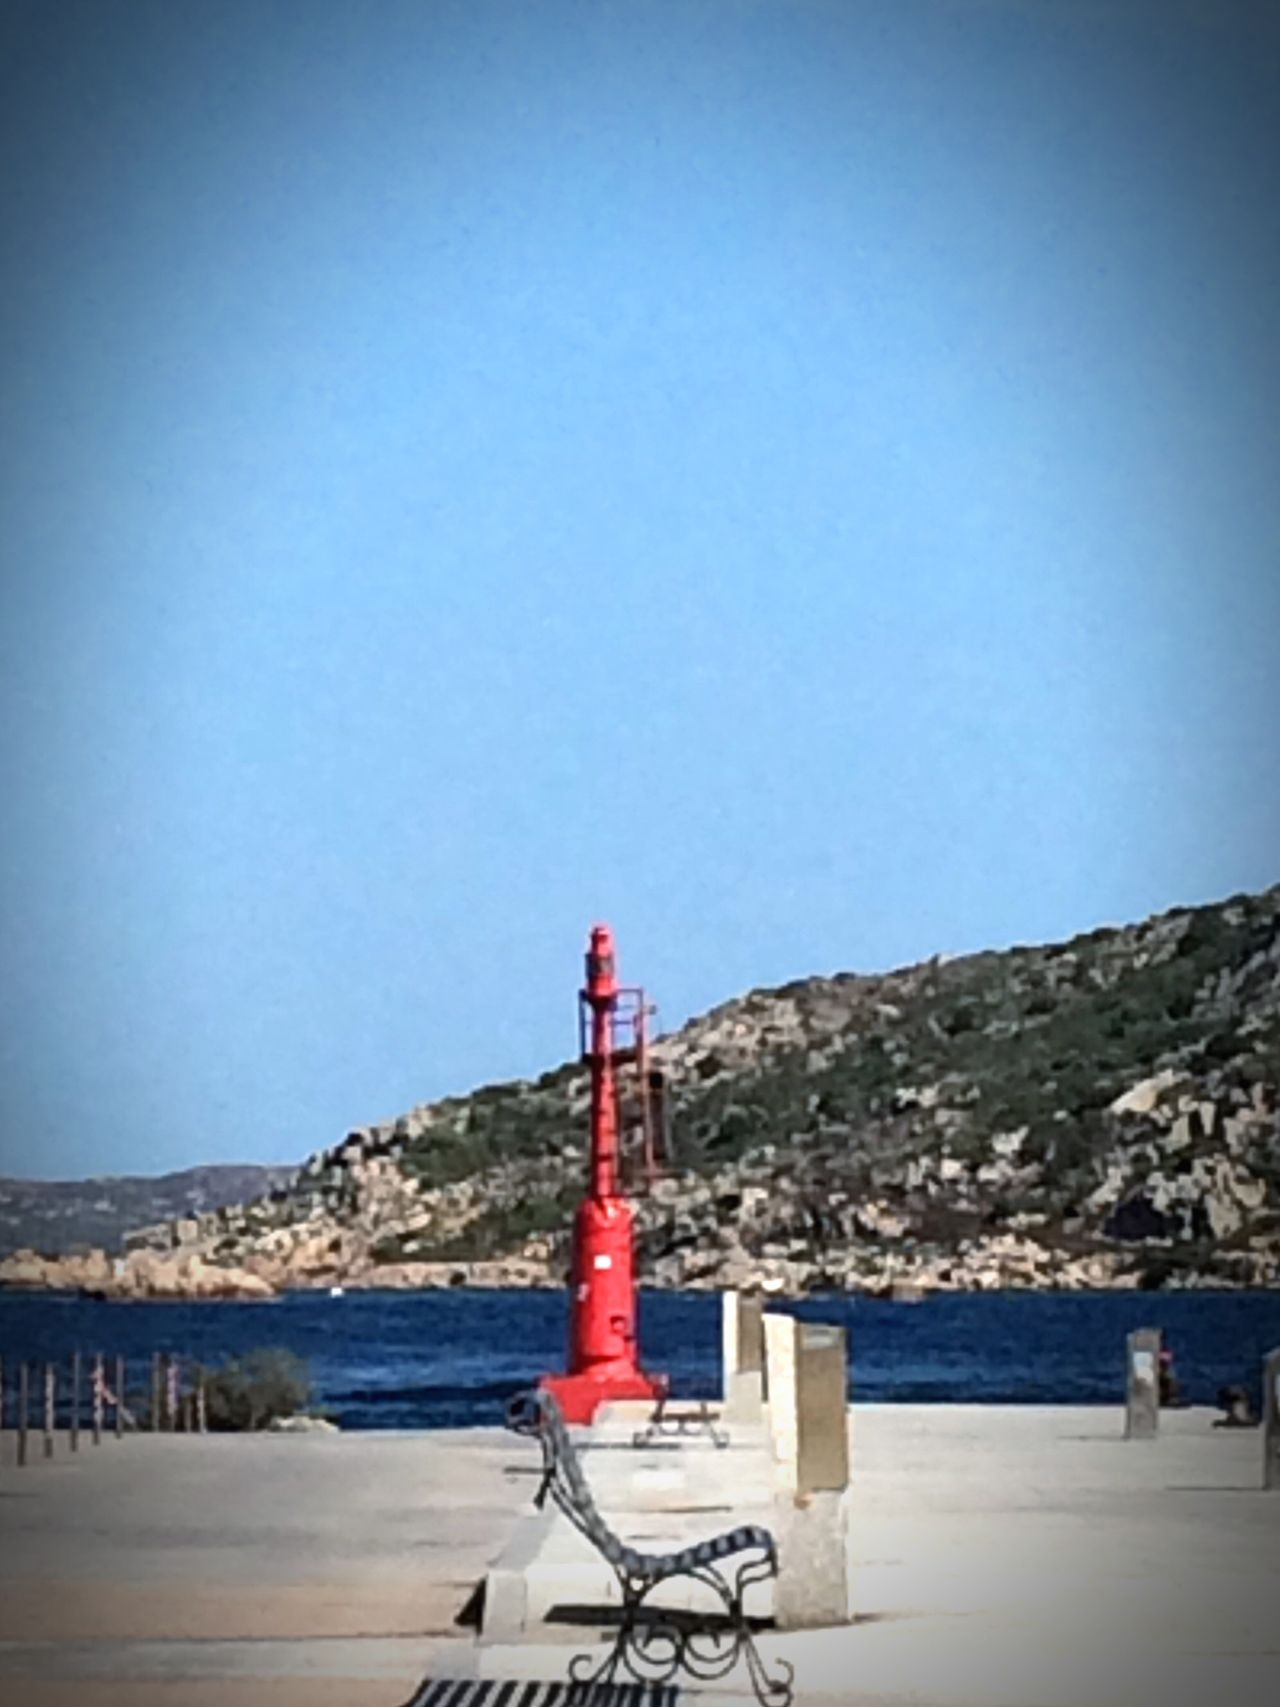 Sardegna Sardegnaofficial Sardegna_super_pics Sardegnamylove Sardegnamare Lamaddalena Mare Relaxing Lighthouse_lovers Lighthouse Port Faro Dal Traghetto